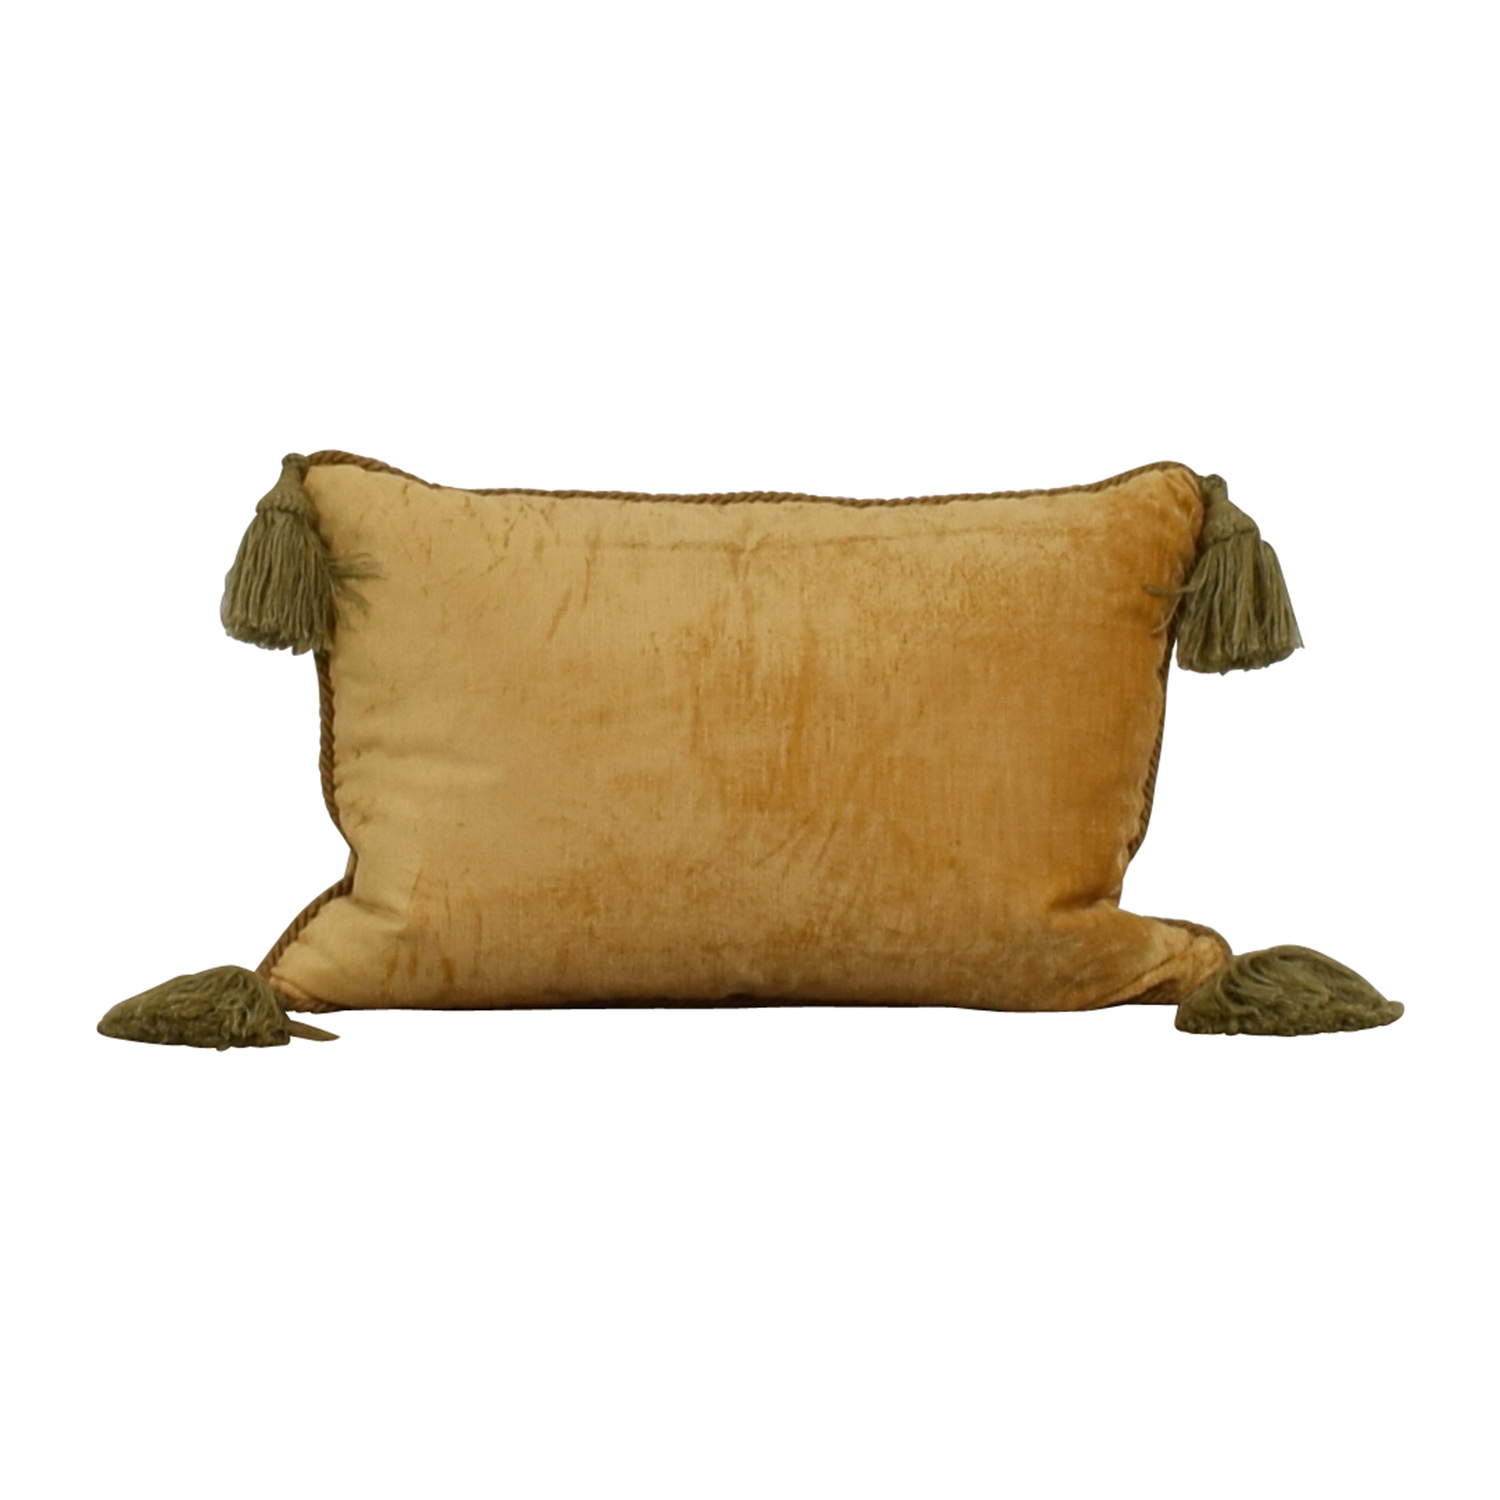 Custom Gold with Green Corner Tassle Toss Pillow Decor